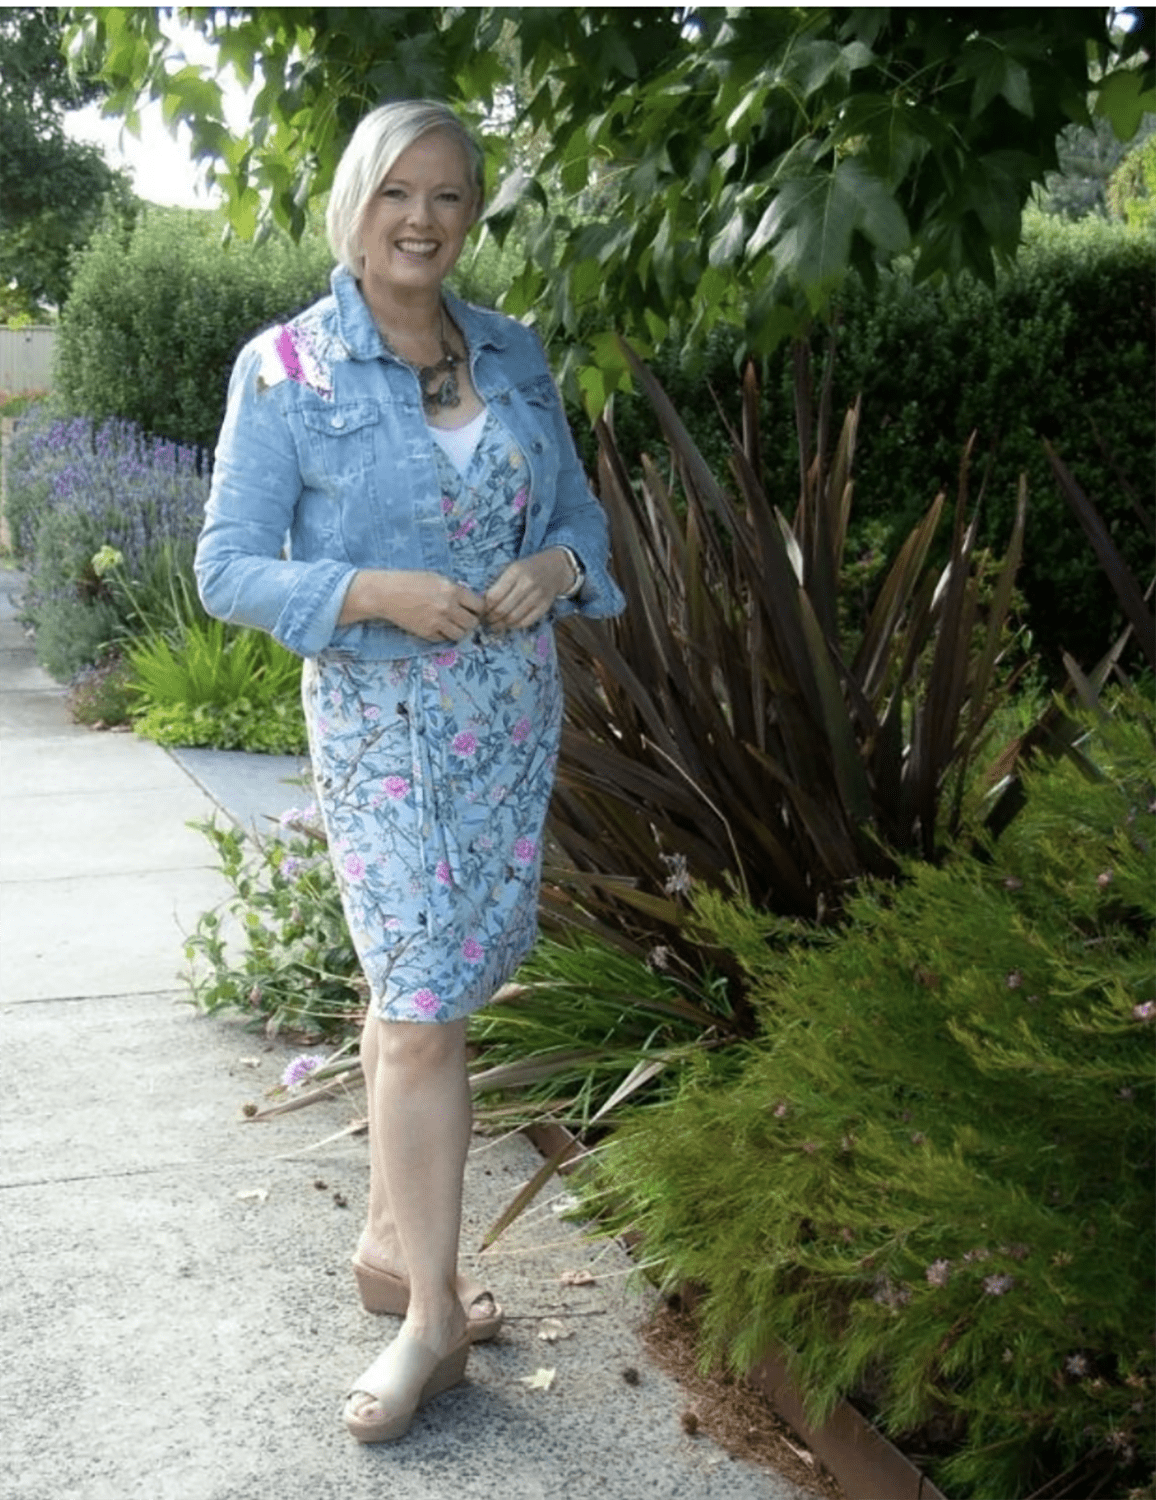 Image Consultant imogen in floral dress